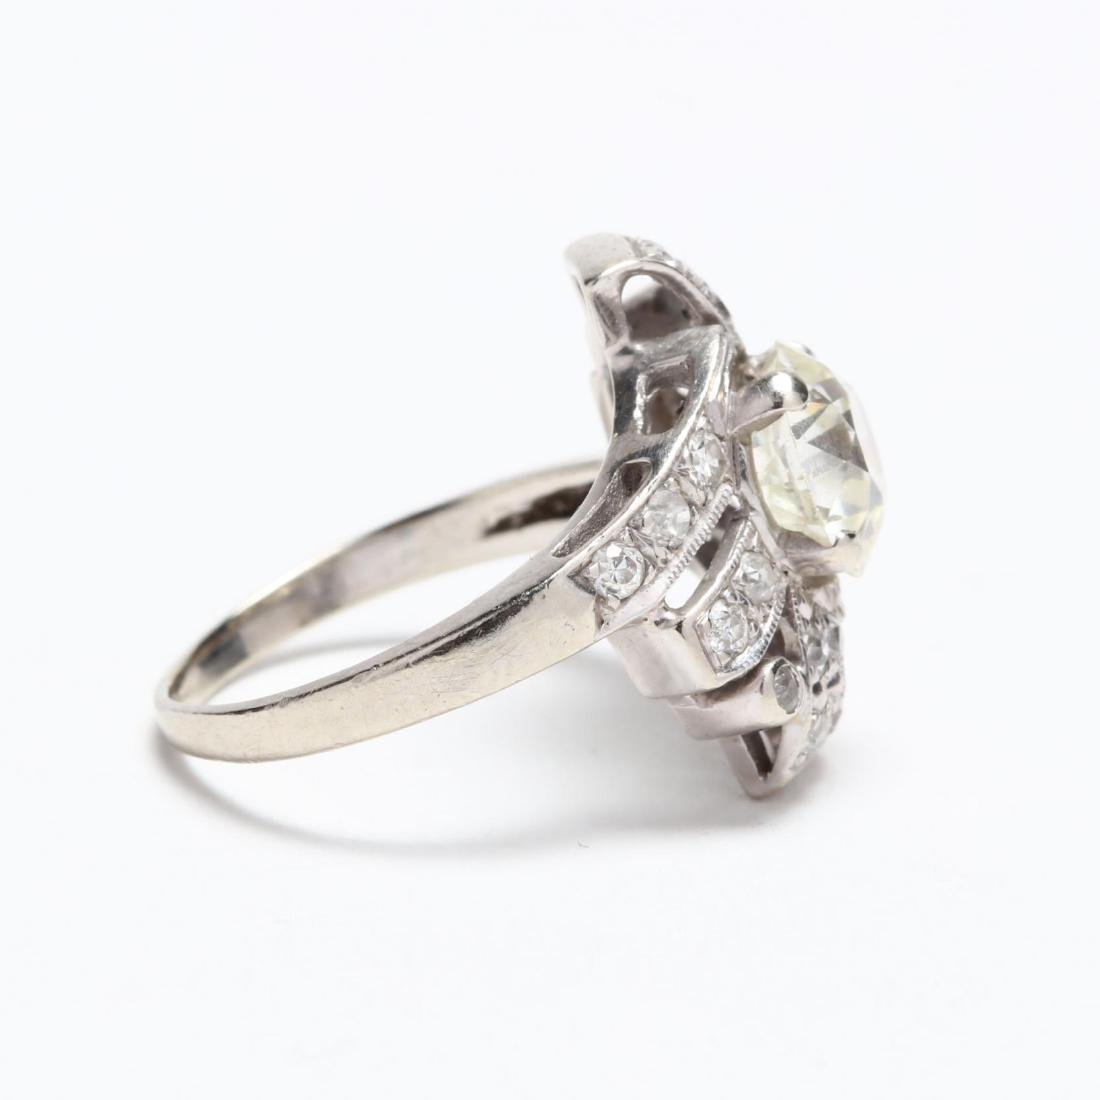 Unmounted Old European Cut Diamond with 14KT White Gold - 5